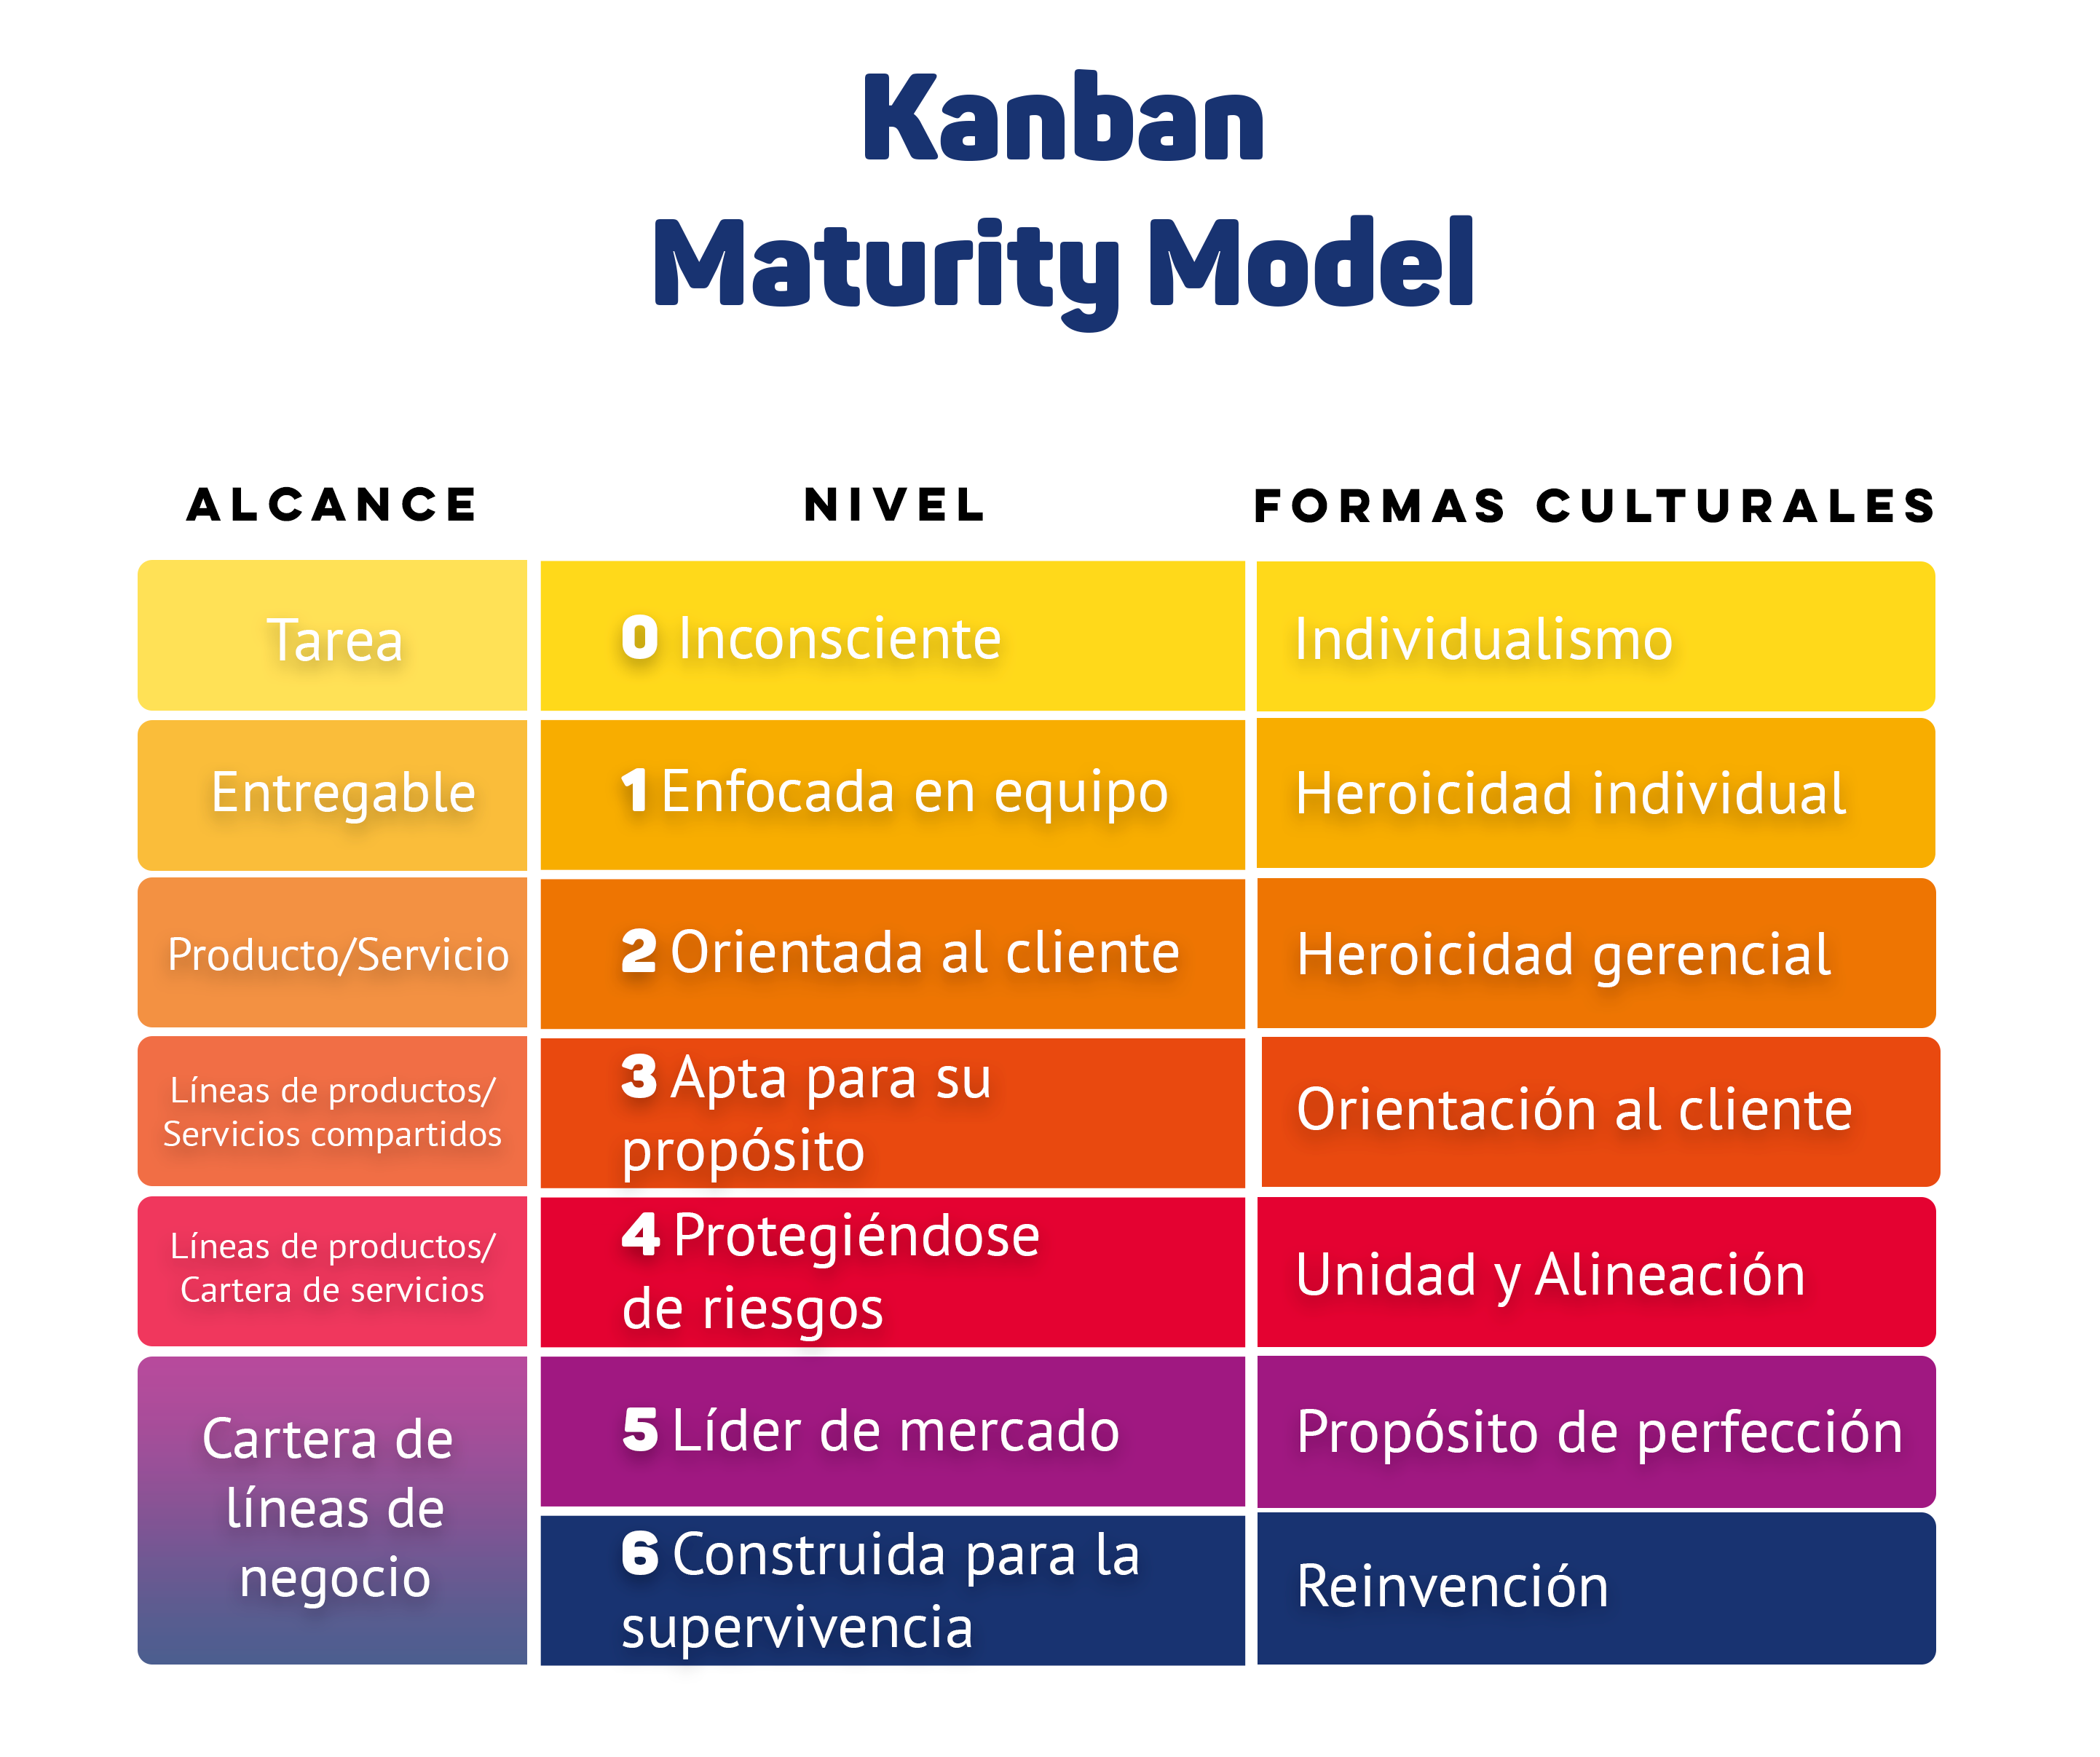 KMM_Infographic_without_leadership-6.0-with-background_spanish-1.png